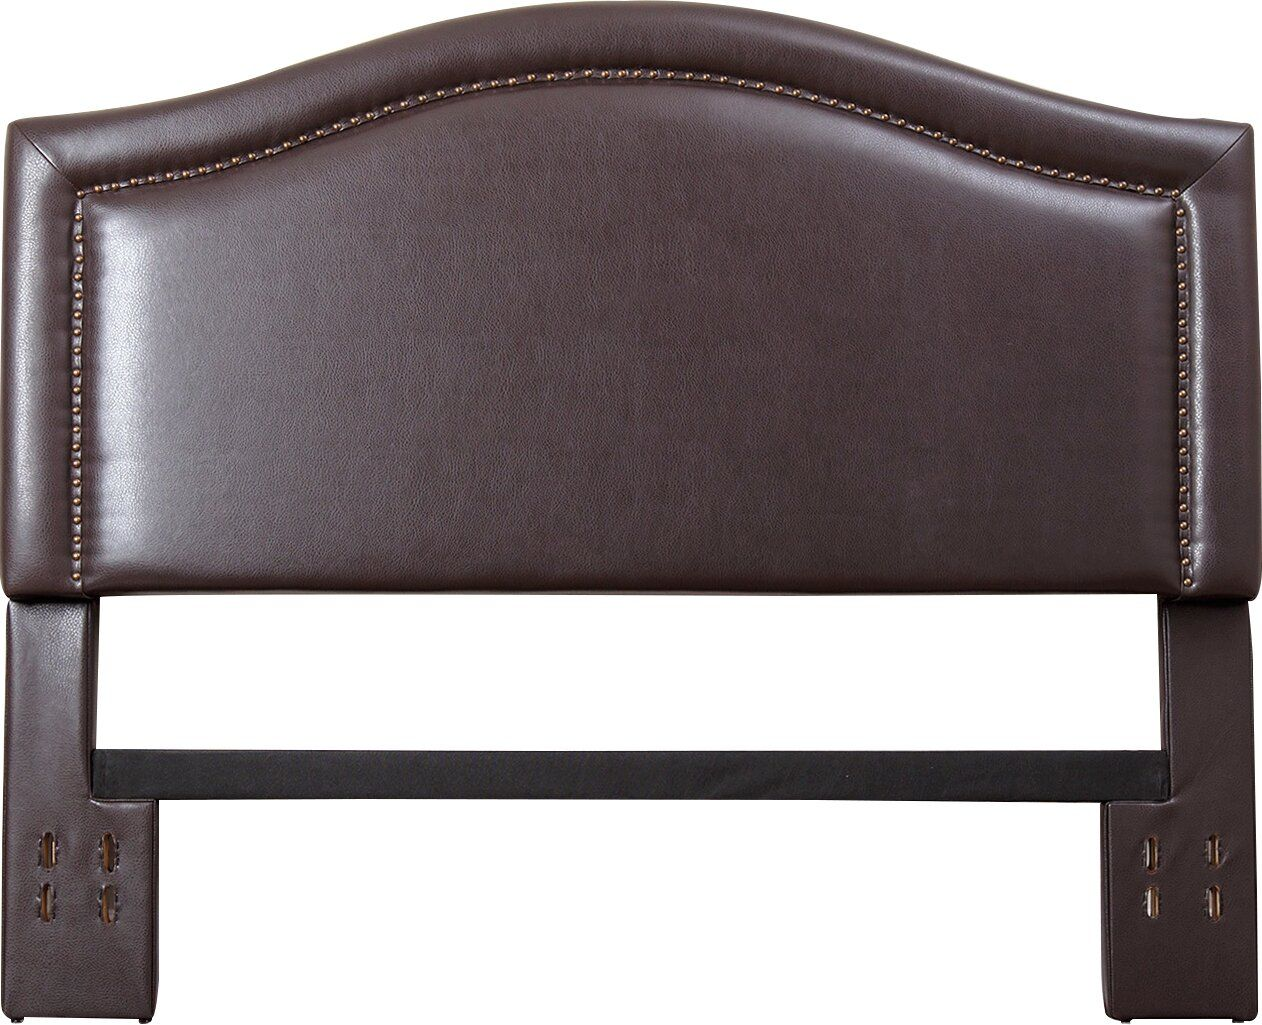 Beqal Upholstered Panel Headboard In 2021 Leather Headboard Upholstered Panels Headboard